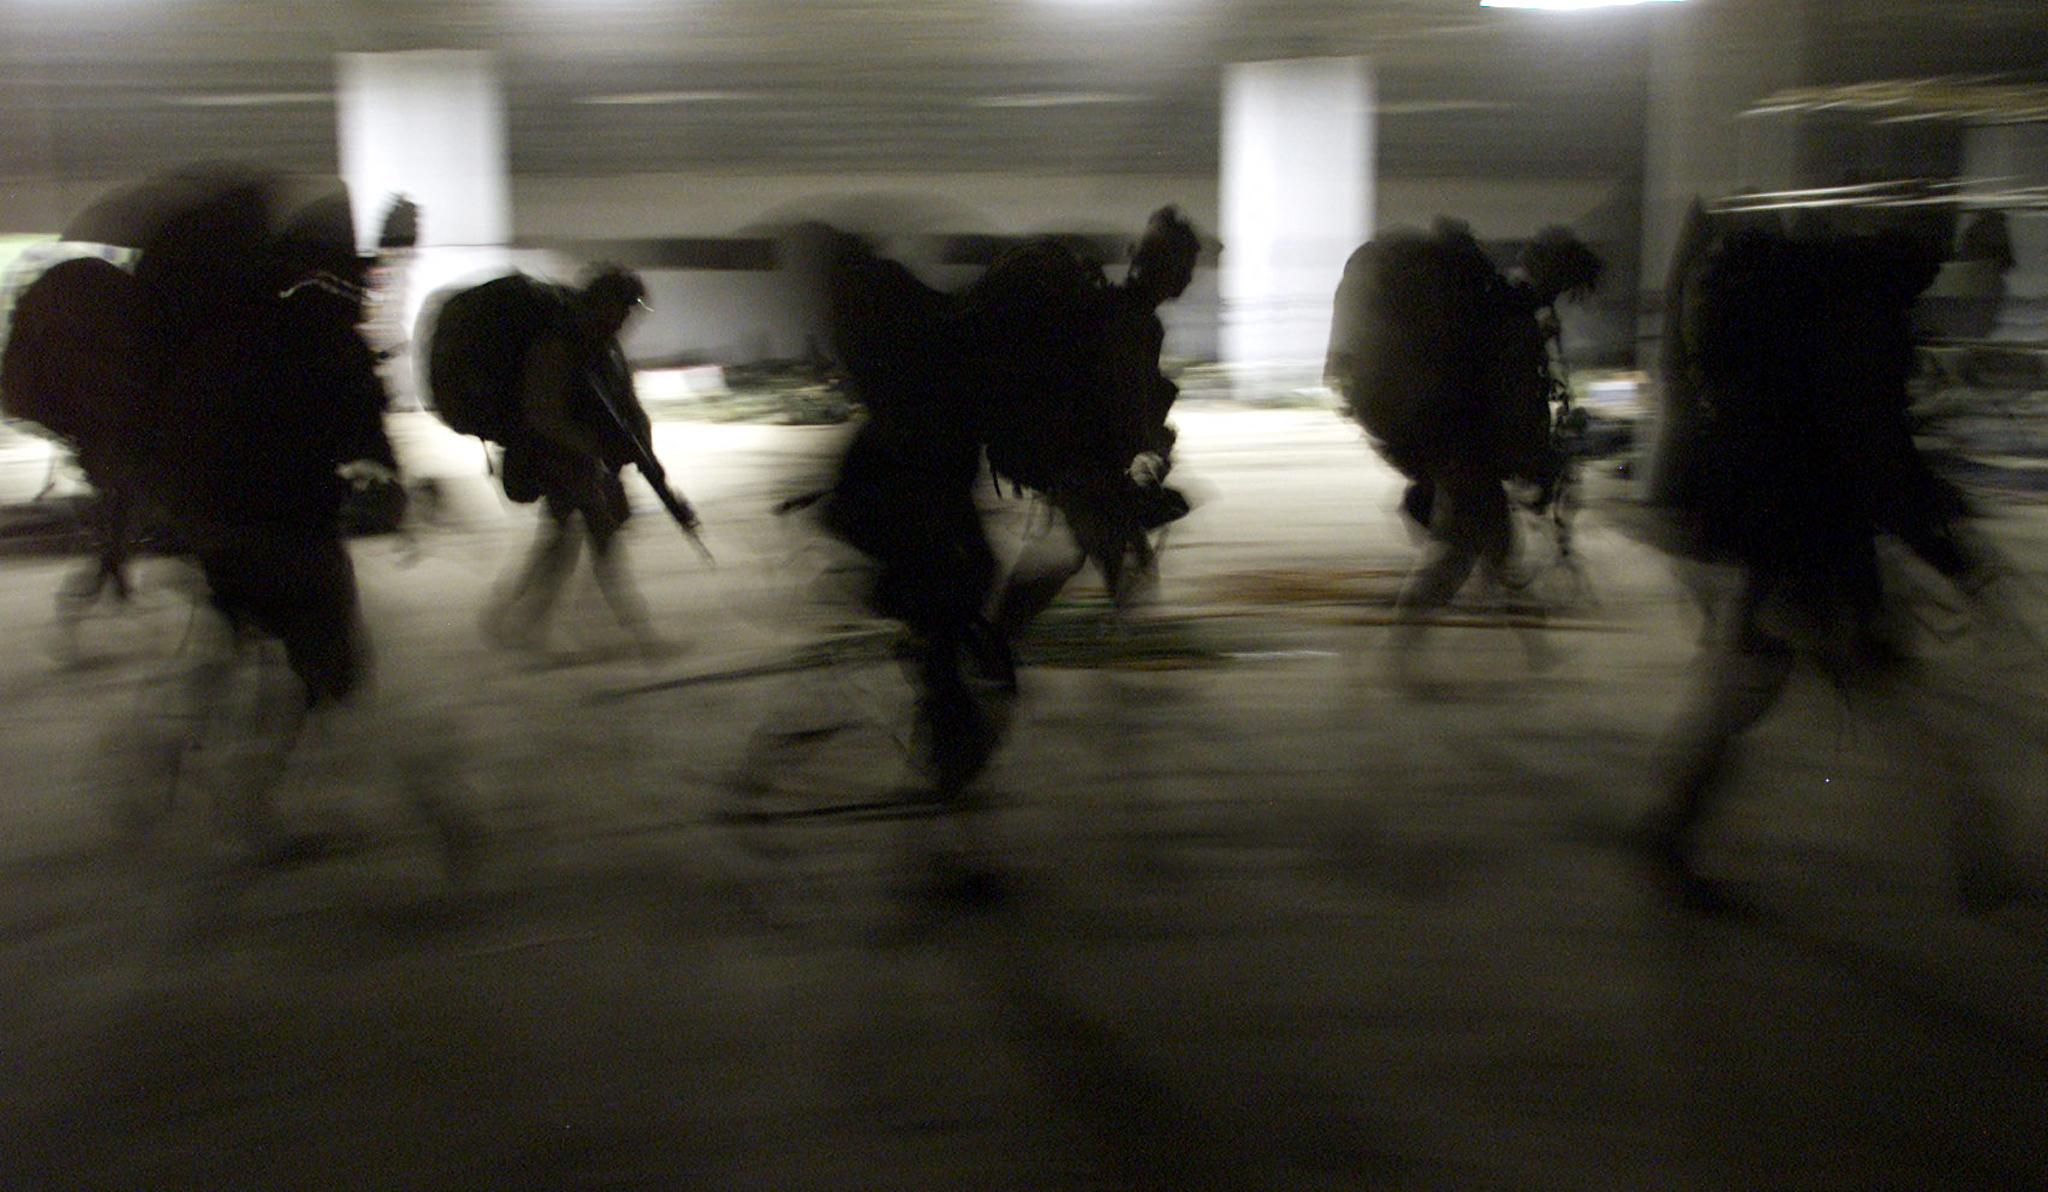 In this file photo taken on November 29, 2001 United States Marines from Bravo Co. of the 15th MEU (Marine Expeditionary Unity) march into the barracks in full battle gear as they arrive very early morning at the US Marines forward base in southern Afghanistan. - Launched in the wake of the September 11 attacks, the war in Afghanistan claimed the lives of tens of thousands of Afghans along with around 2,400 US soldiers and saw trillions squandered in what has largely been deemed a failed nation-building project. (Photo by JIM HOLLANDER / POOL / AFP) (Photo by JIM HOLLANDER/POOL/AFP via Getty Images)